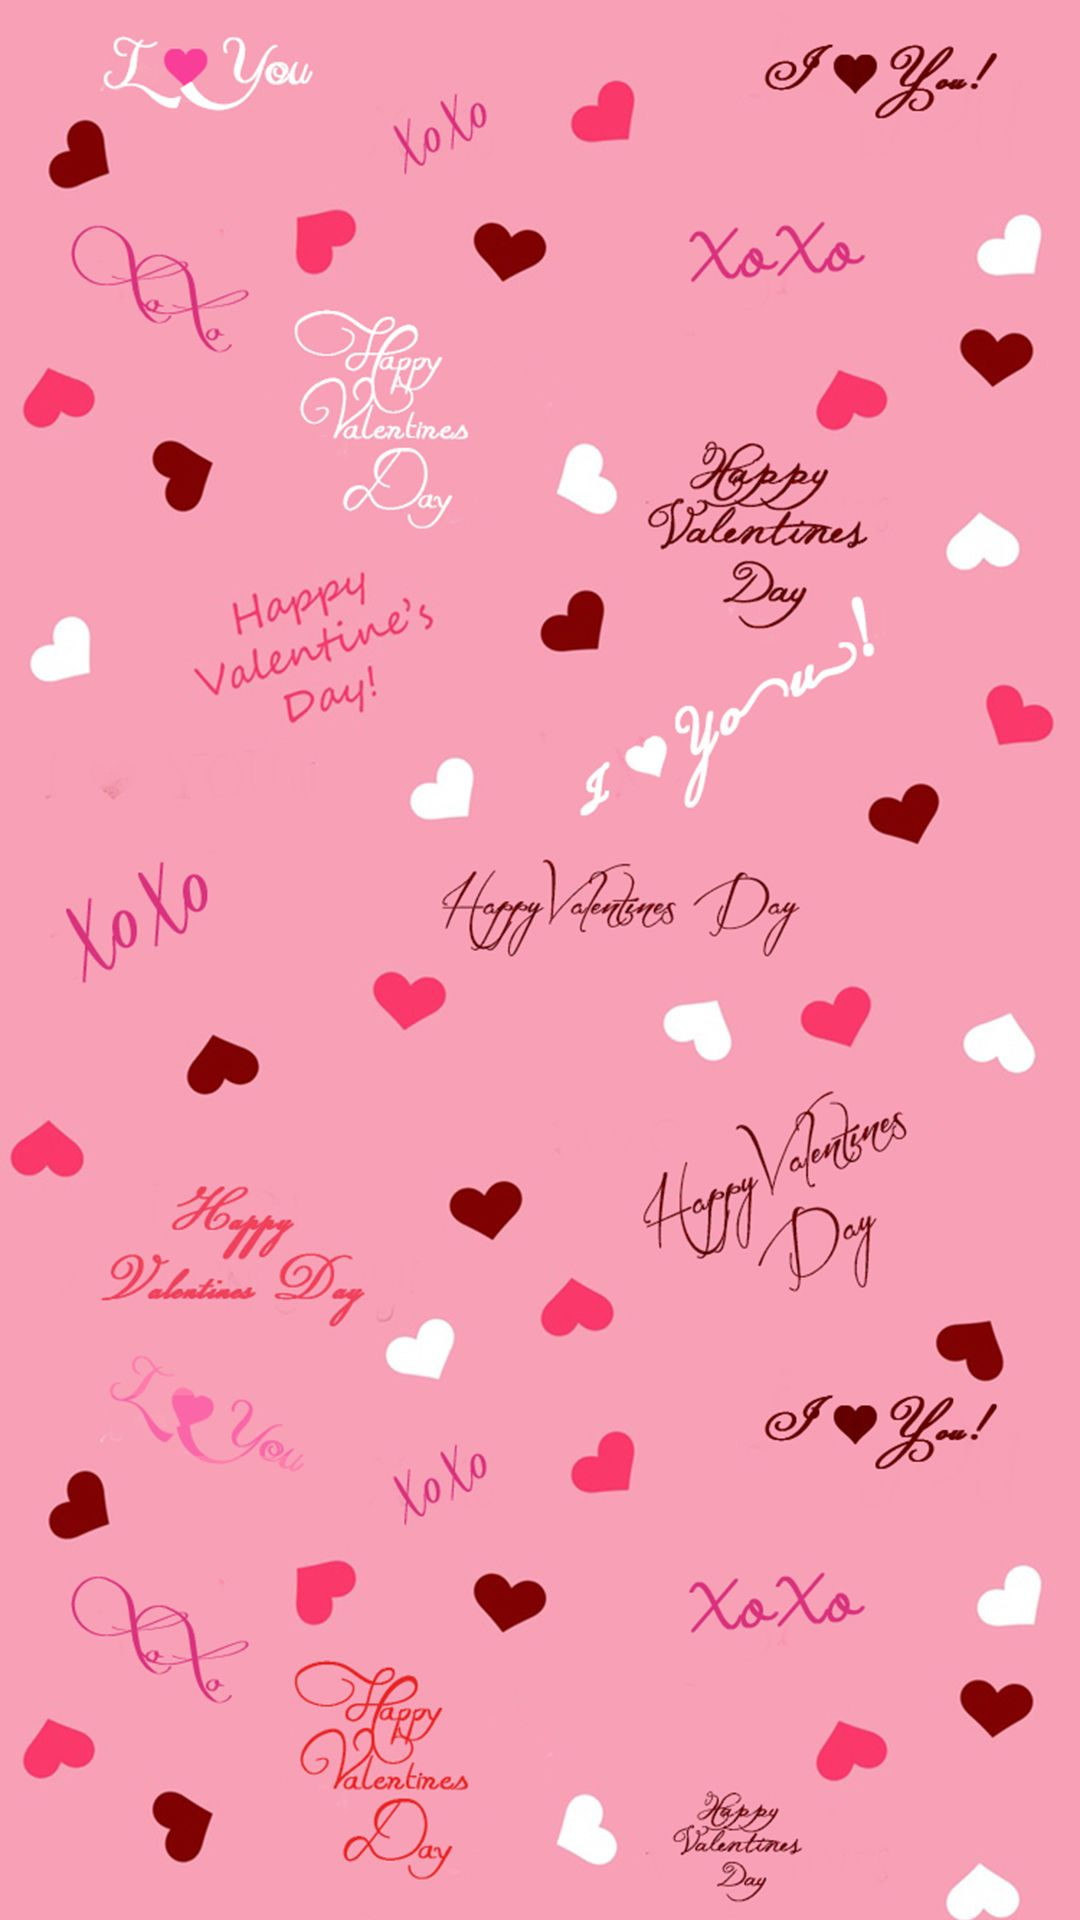 41 cute valentine iphone wallpapers free to download valentine\u0027s